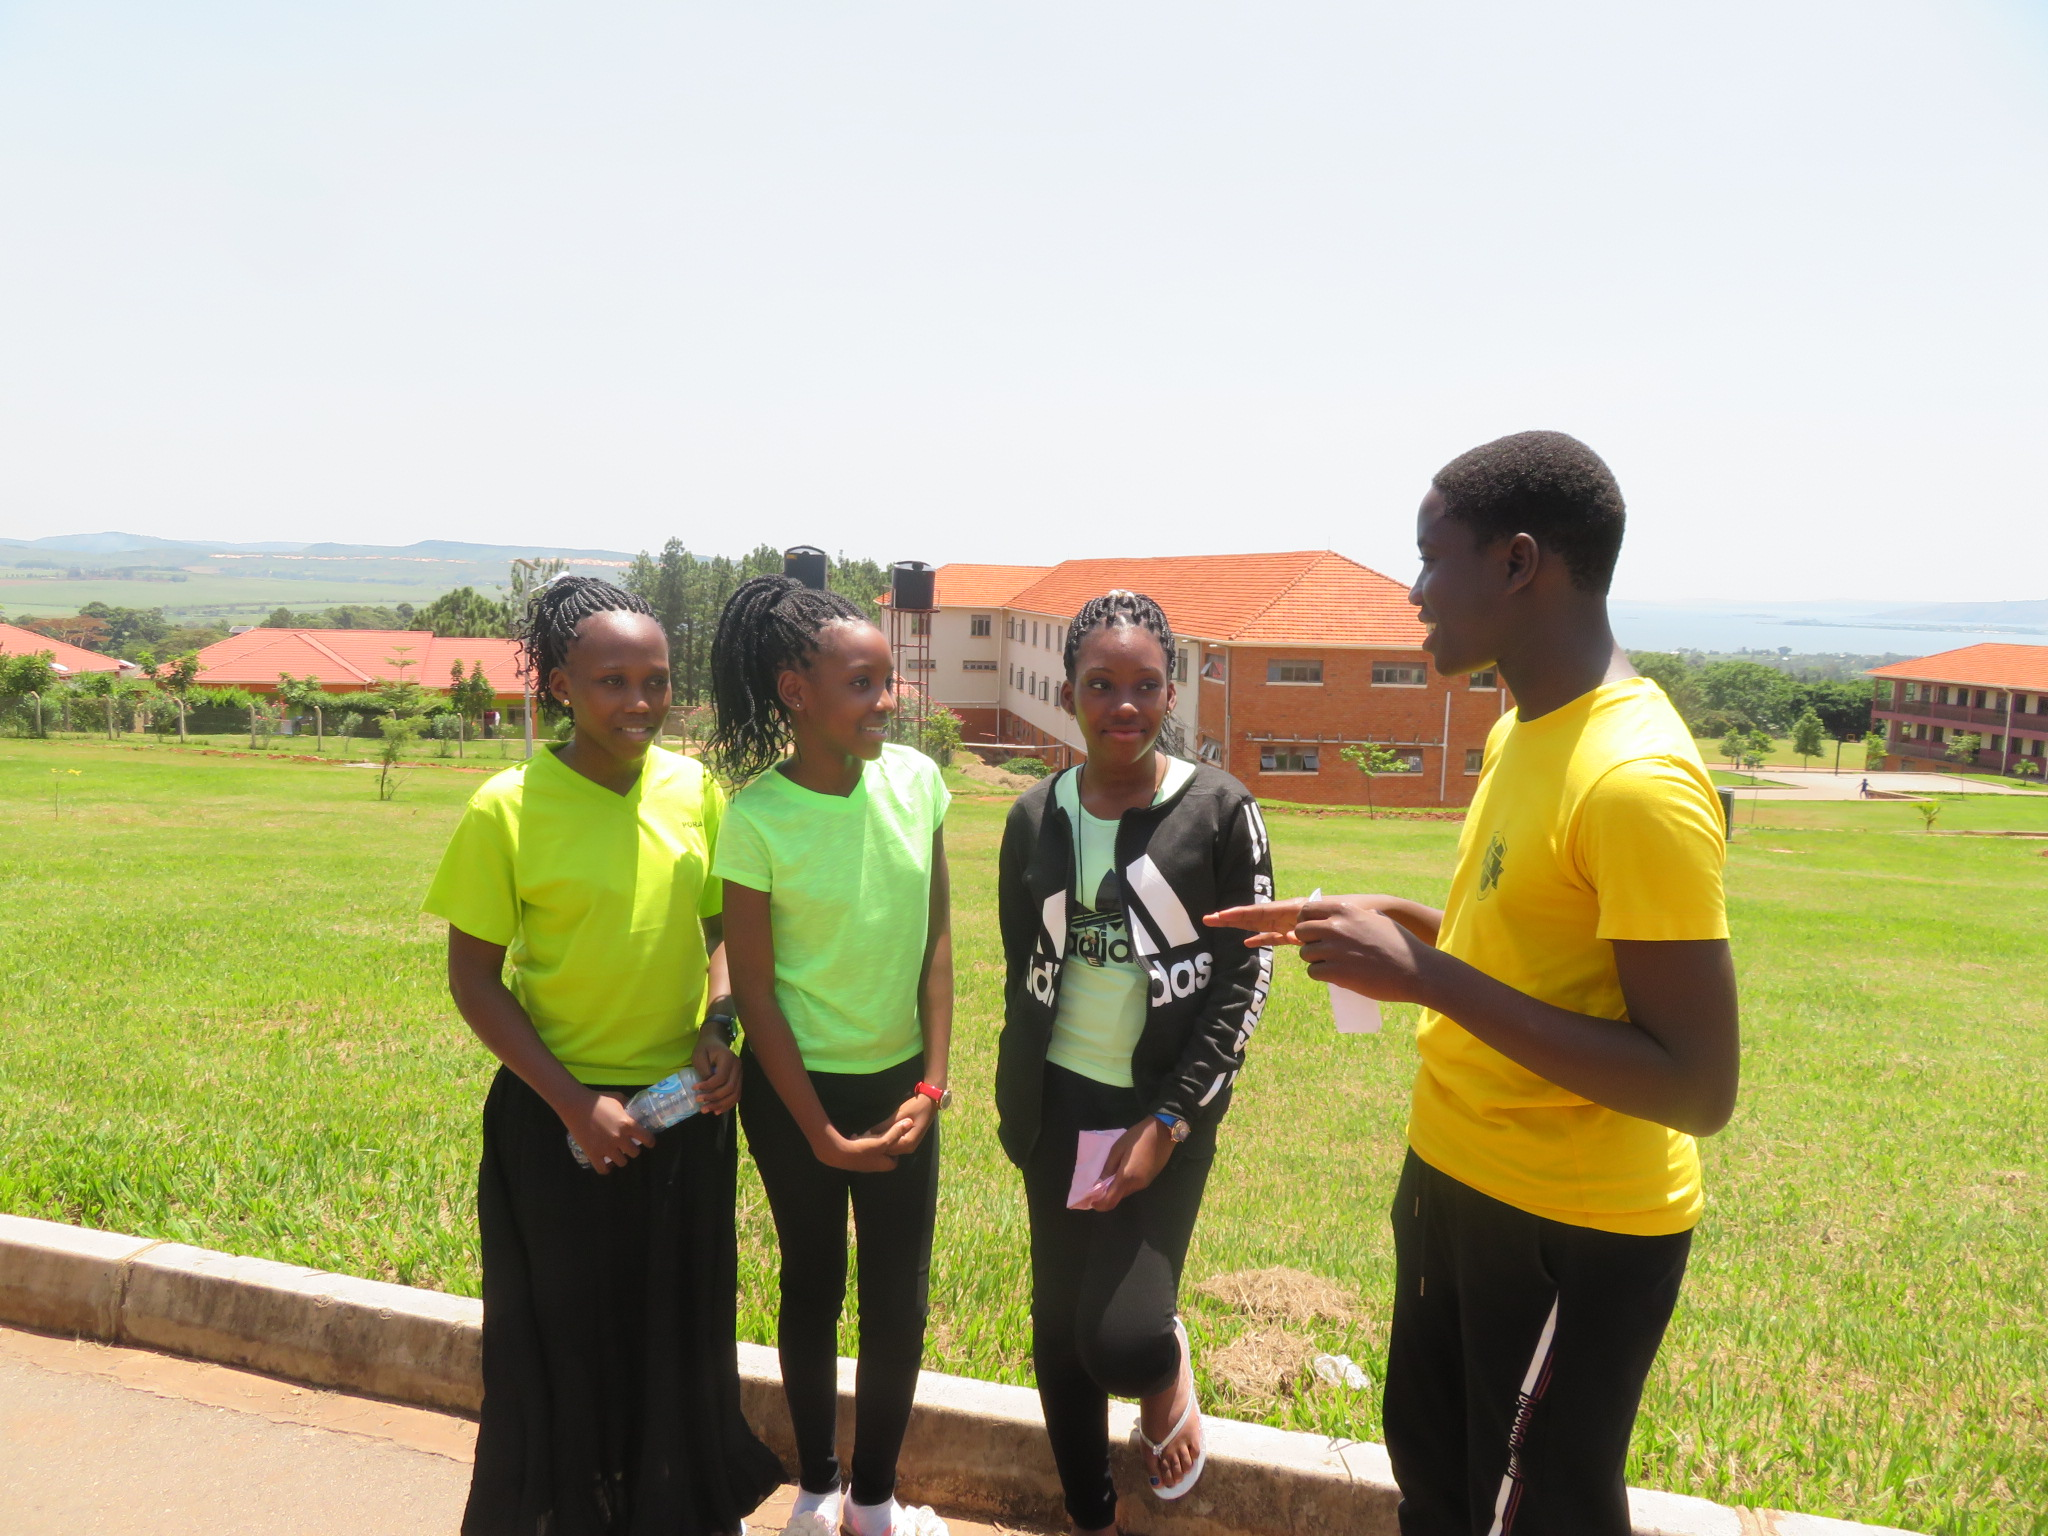 interview with the information prefect